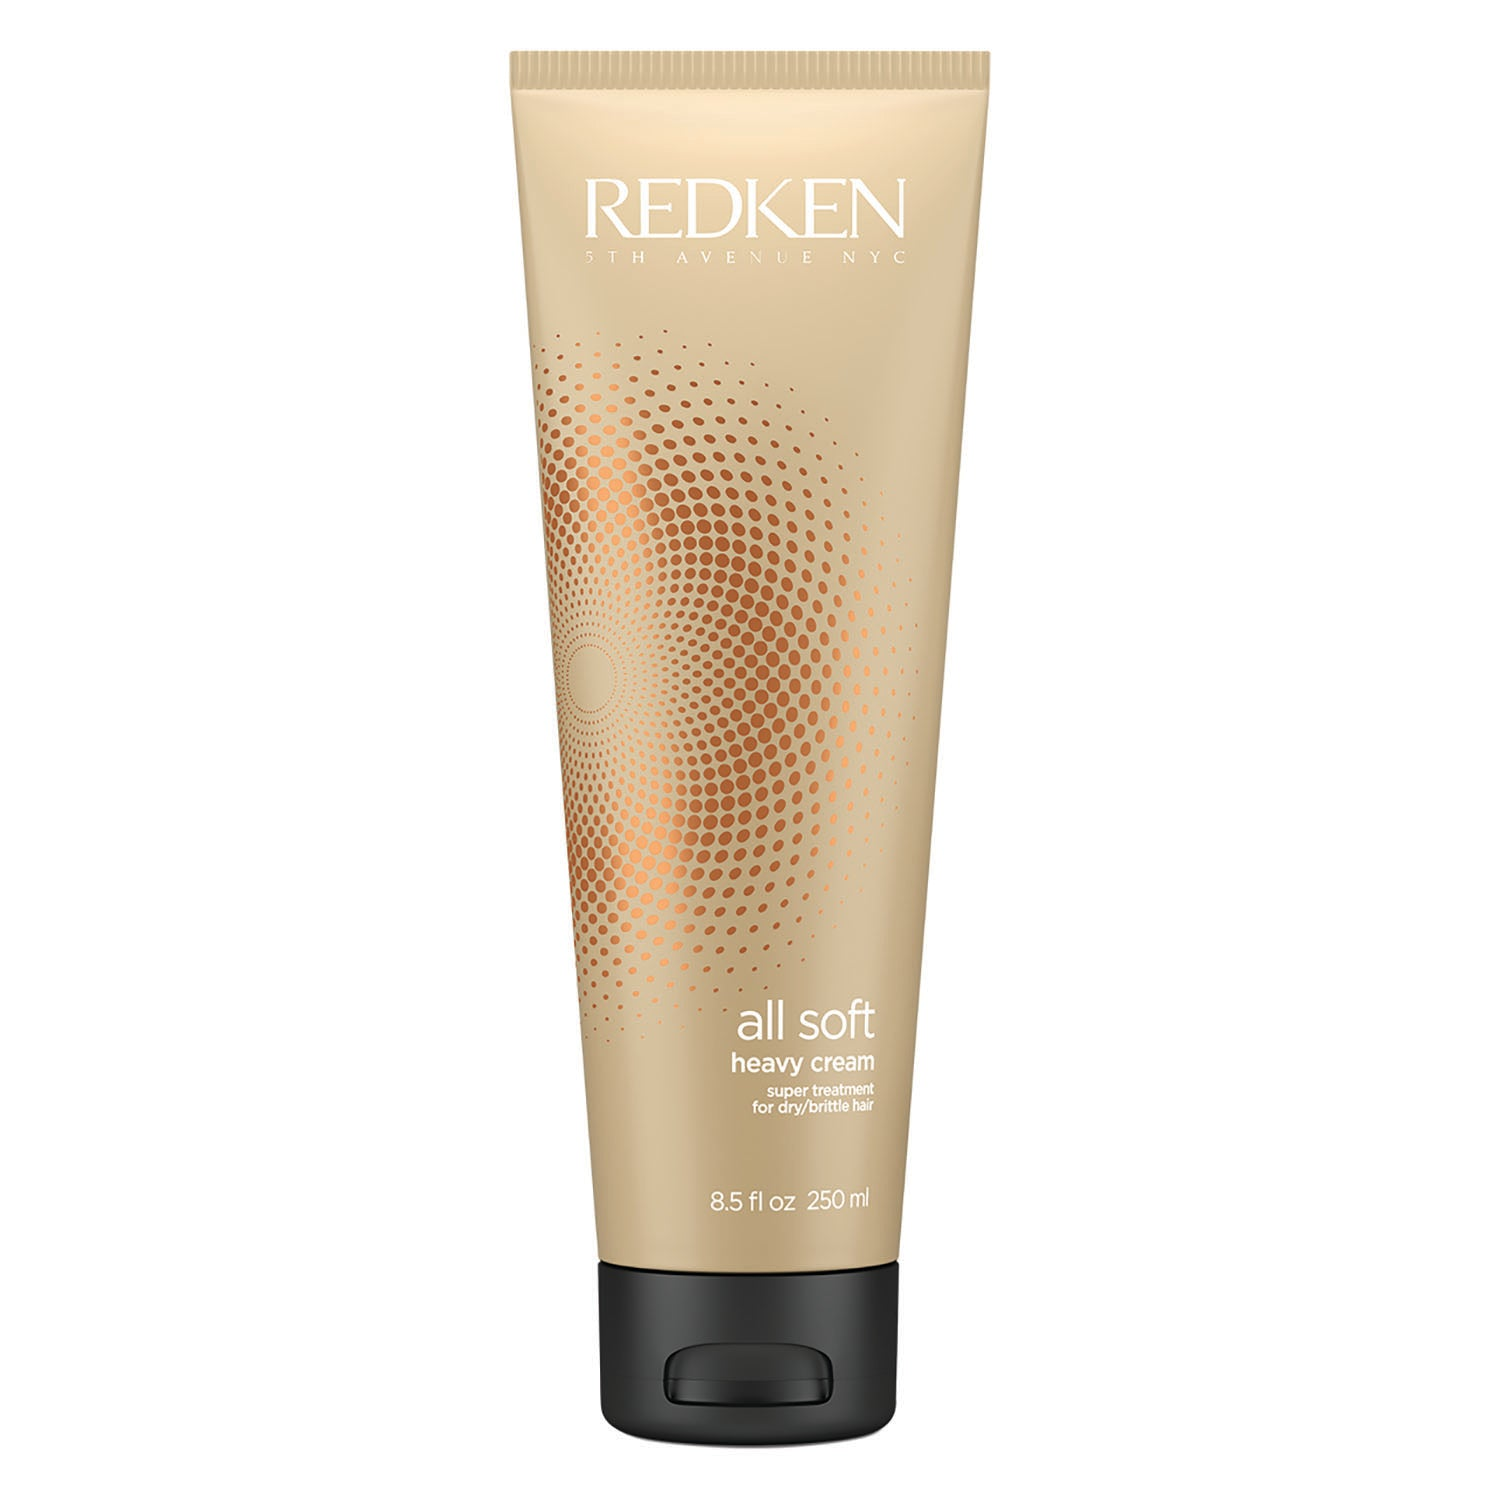 Redken® All Soft Heavy Cream